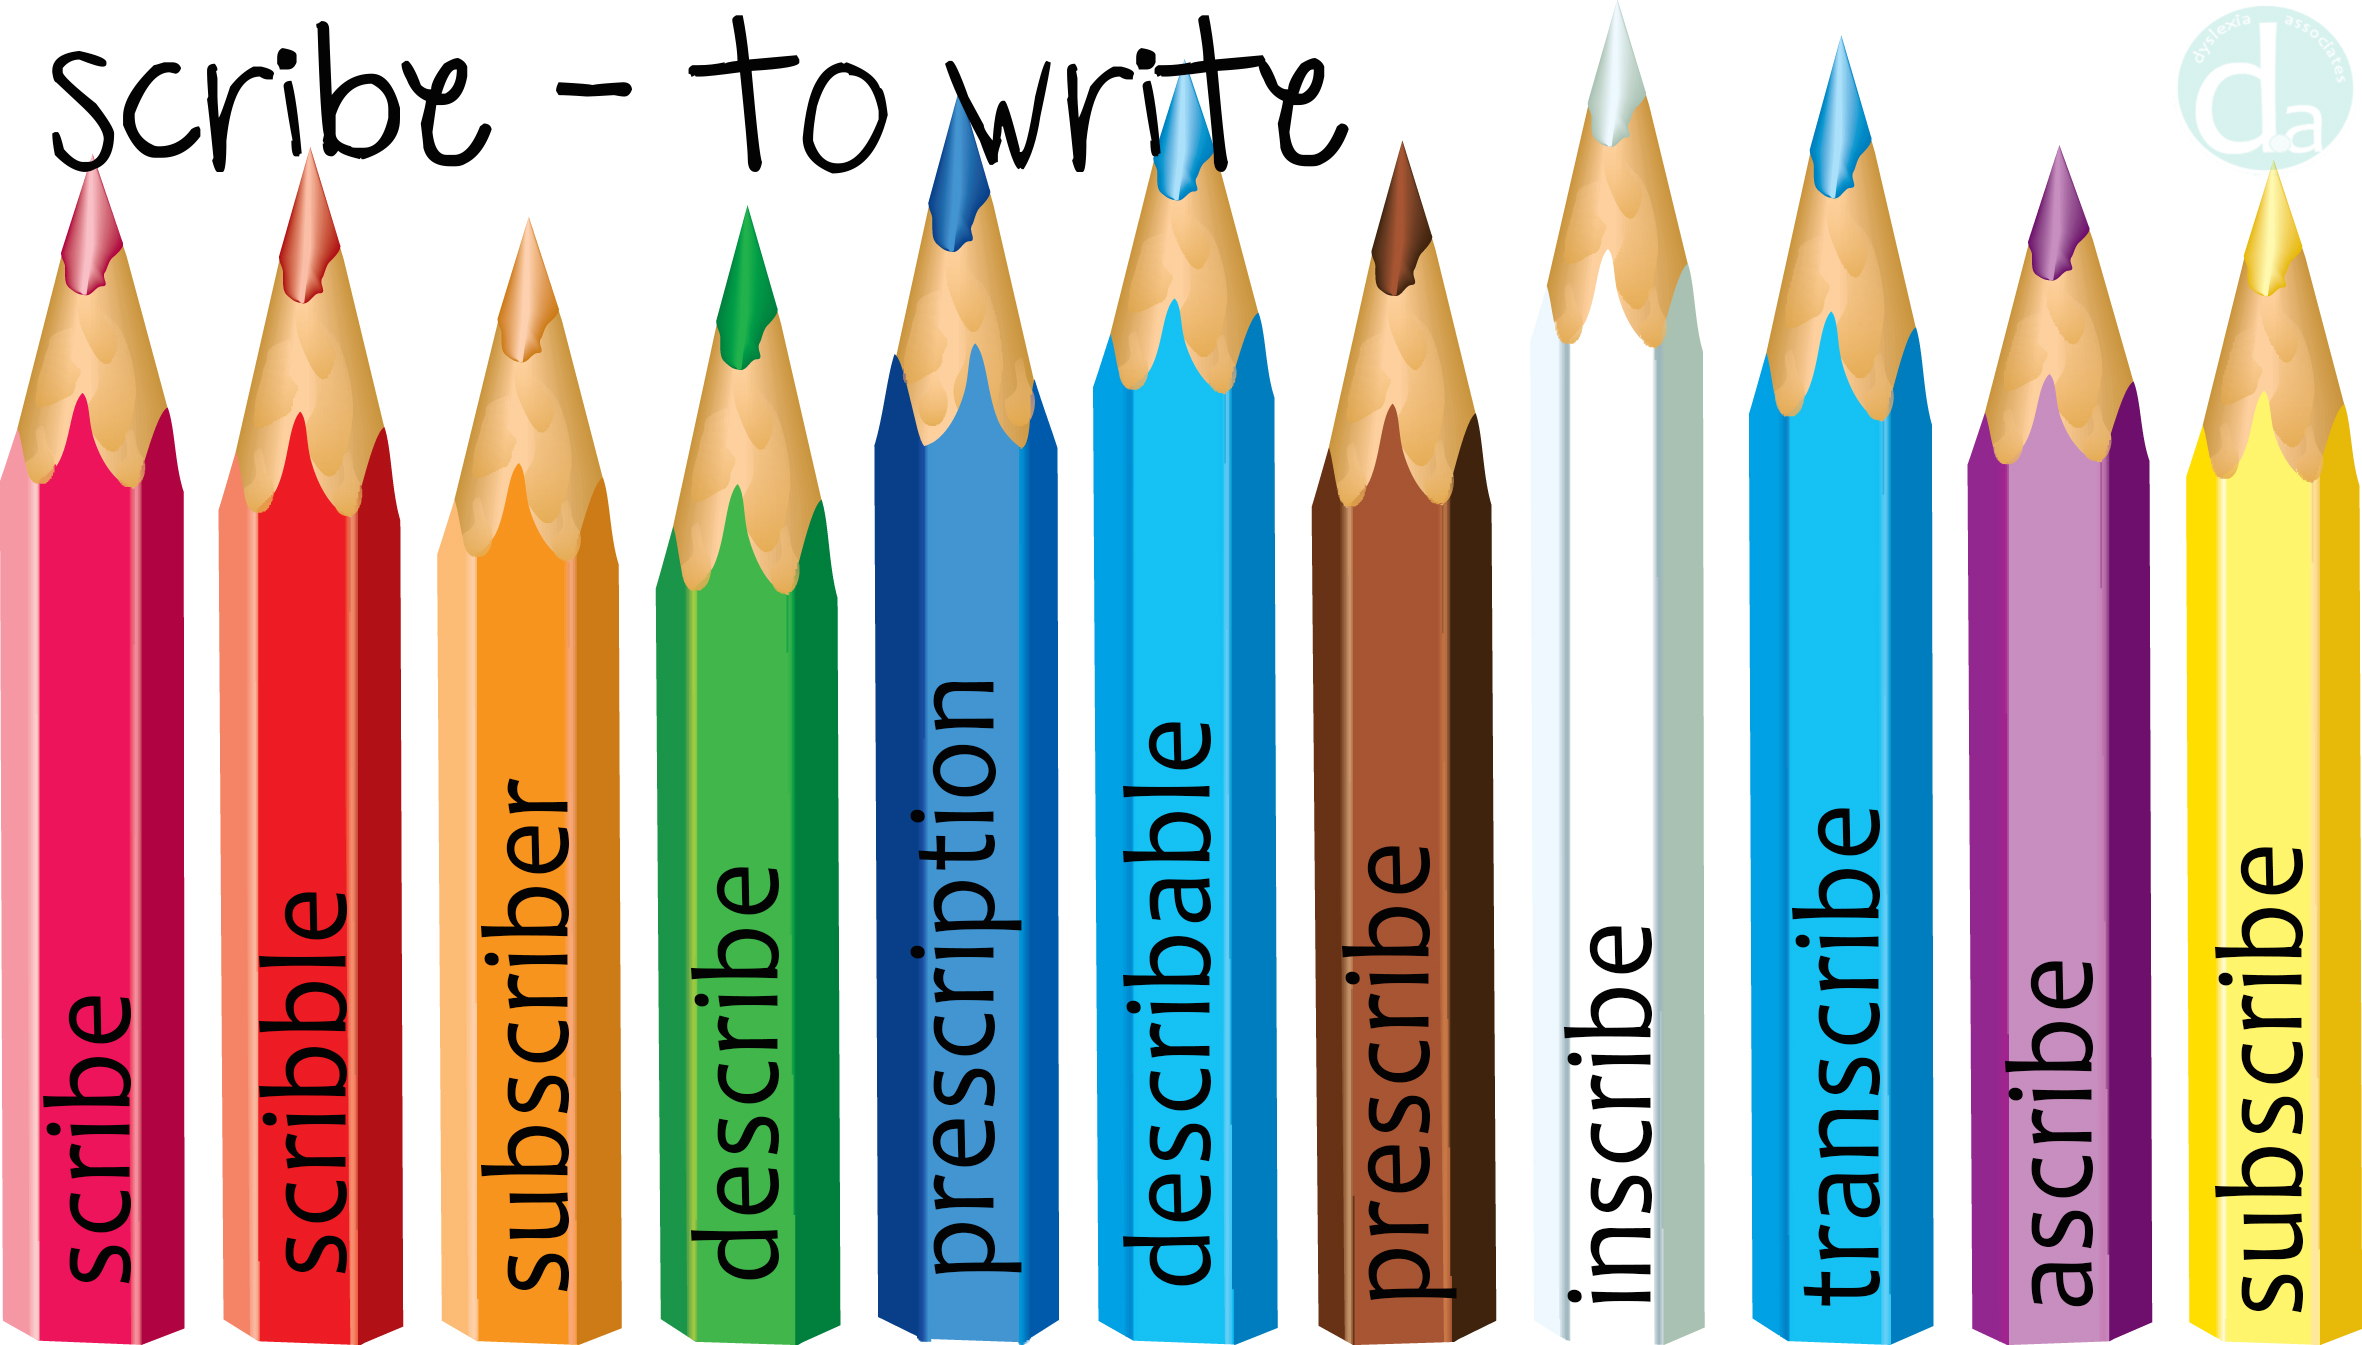 Fun resource for the root word -scribe meaning 'to write'. From dyslexia.associates